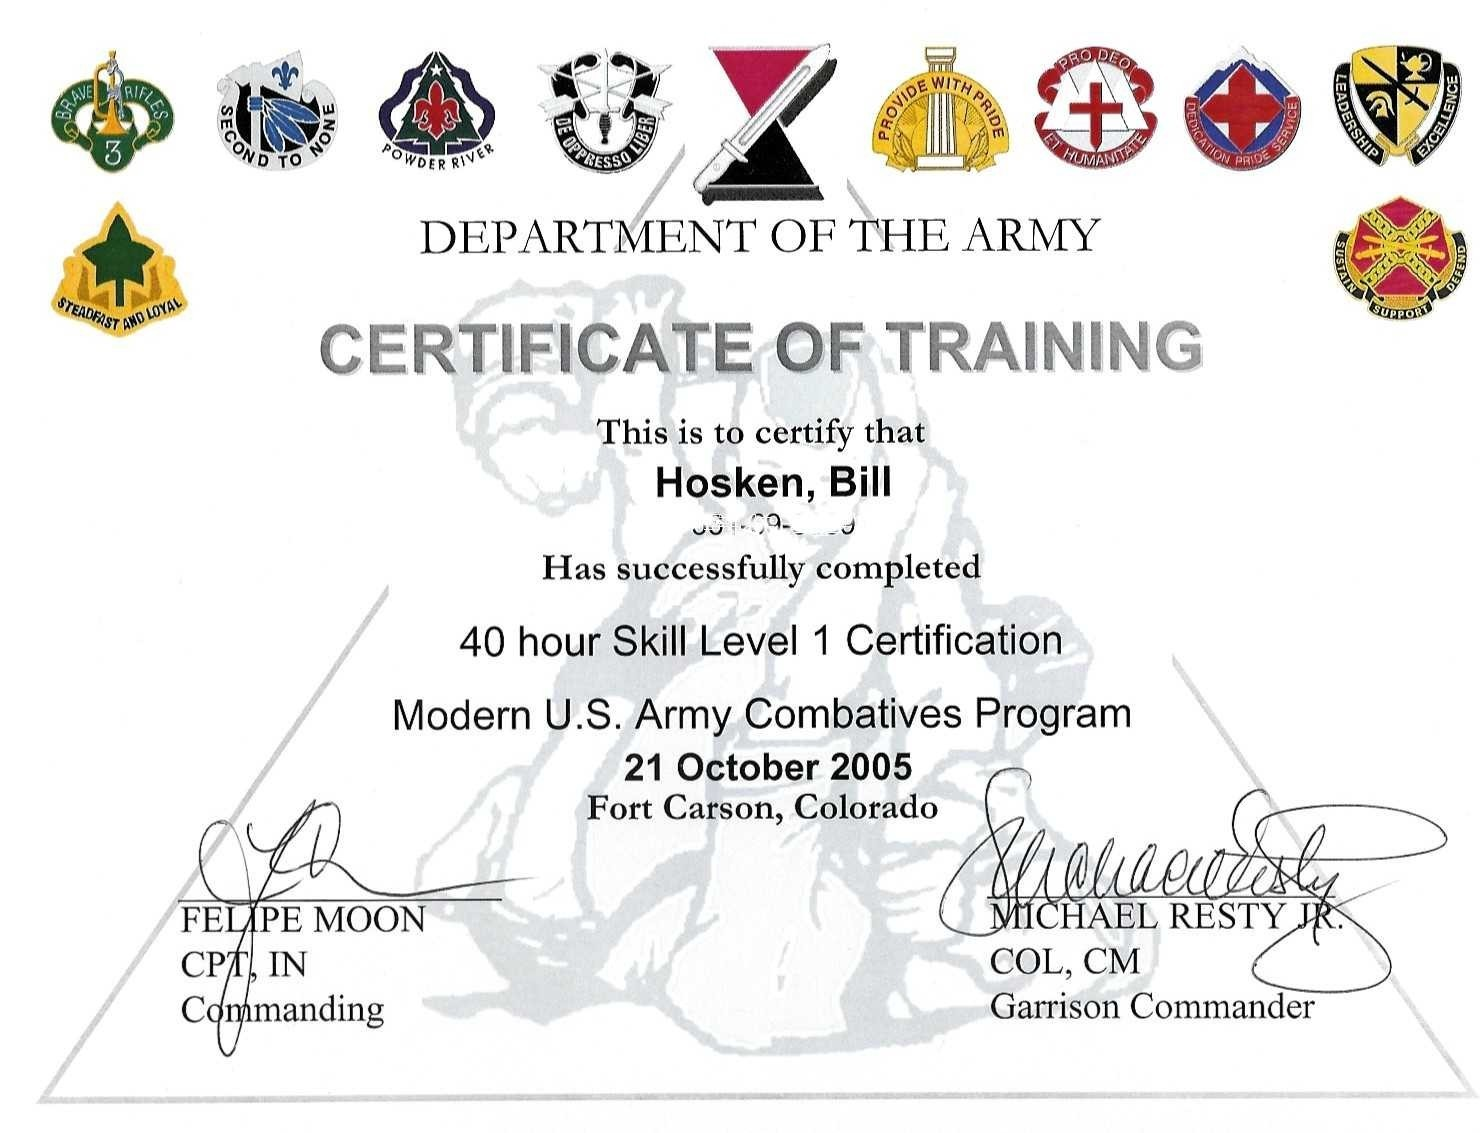 Training certificate of completion template army training certificate of completion template 1betcityfo Choice Image